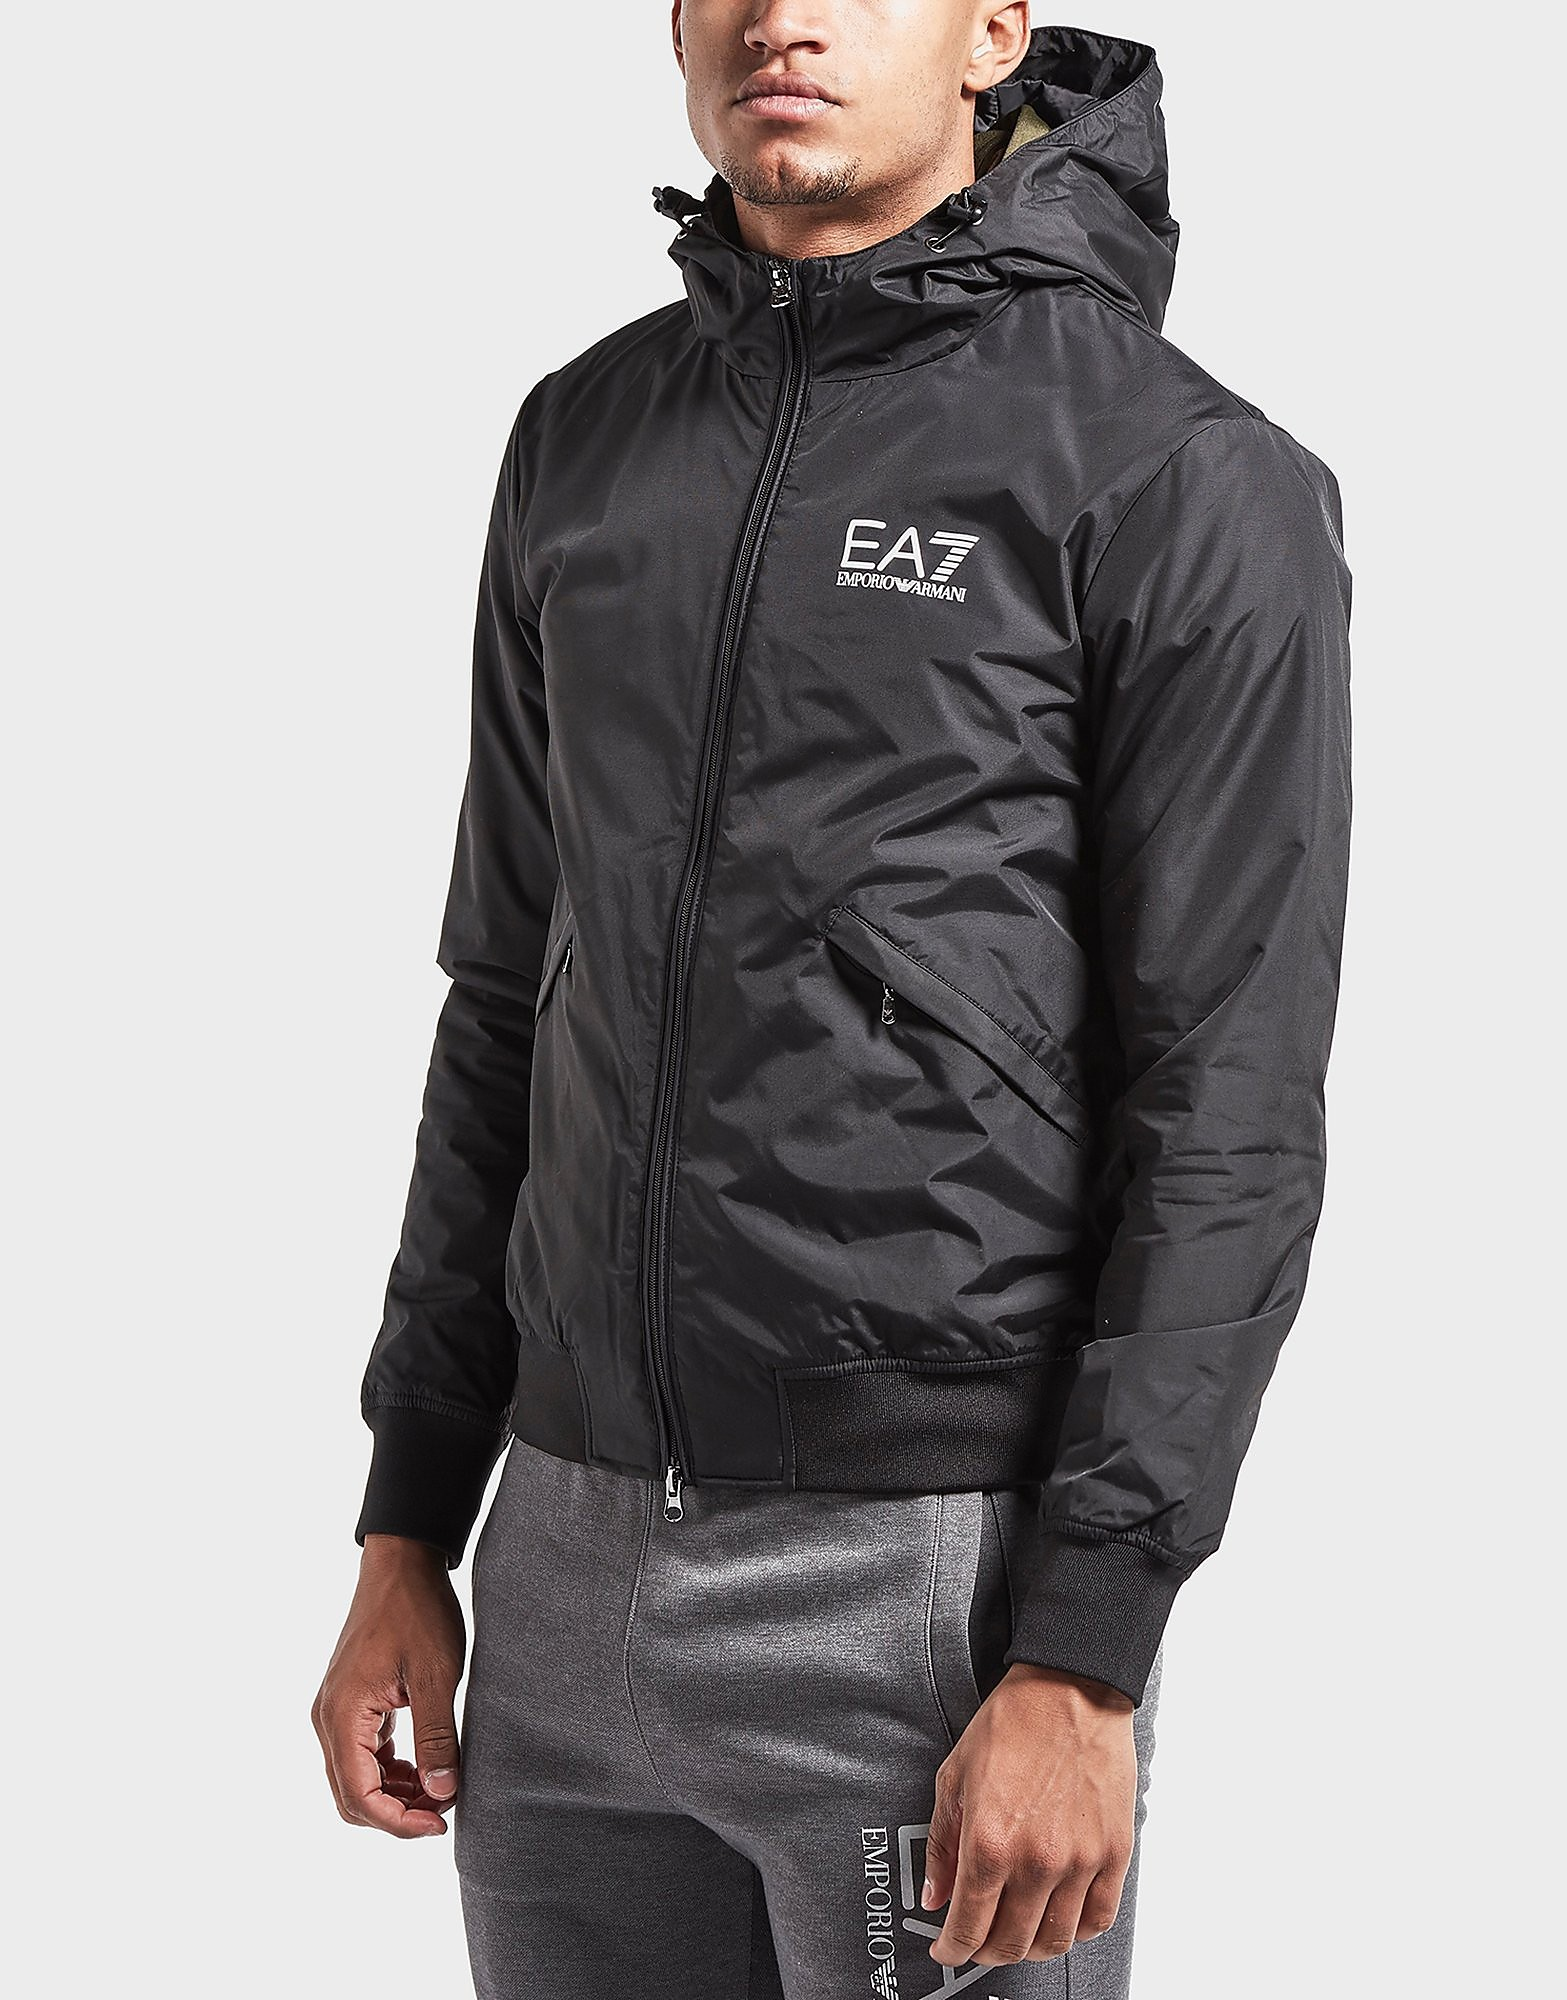 Emporio Armani EA7 Core Hooded Jacket